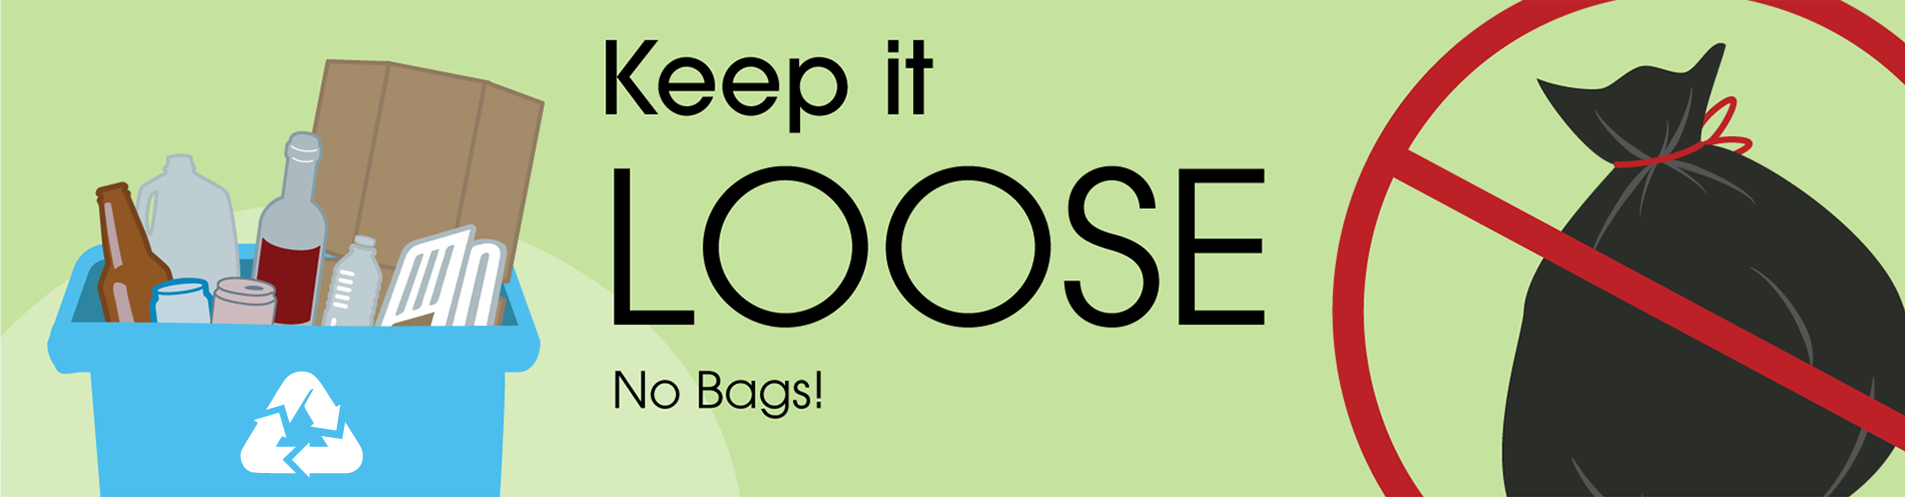 Keep it loose, no bags!